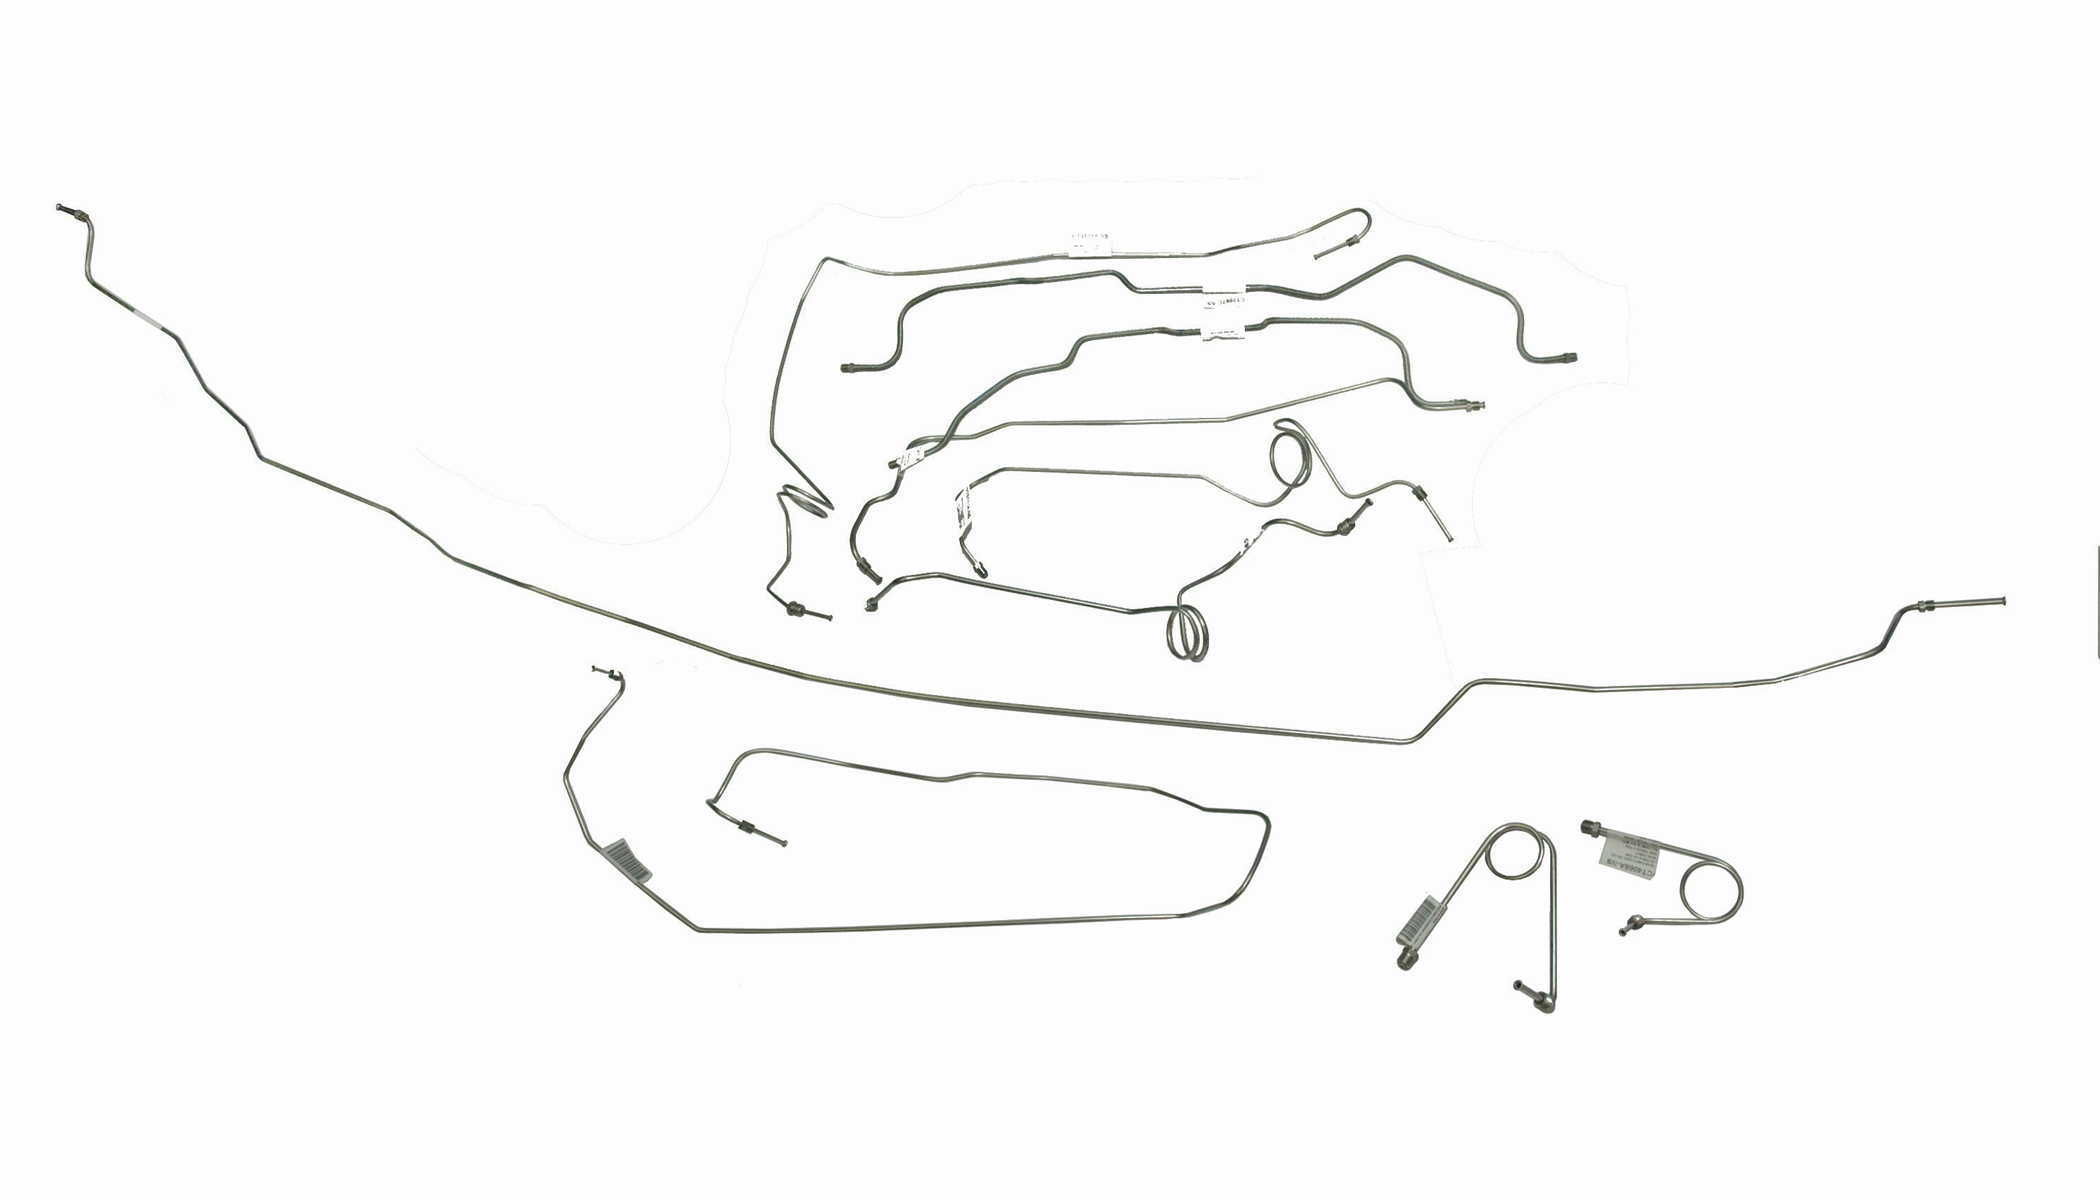 FUEL AND BRAKE LINE PROTECTION FOR CHEVY AND GMC TRUCKS